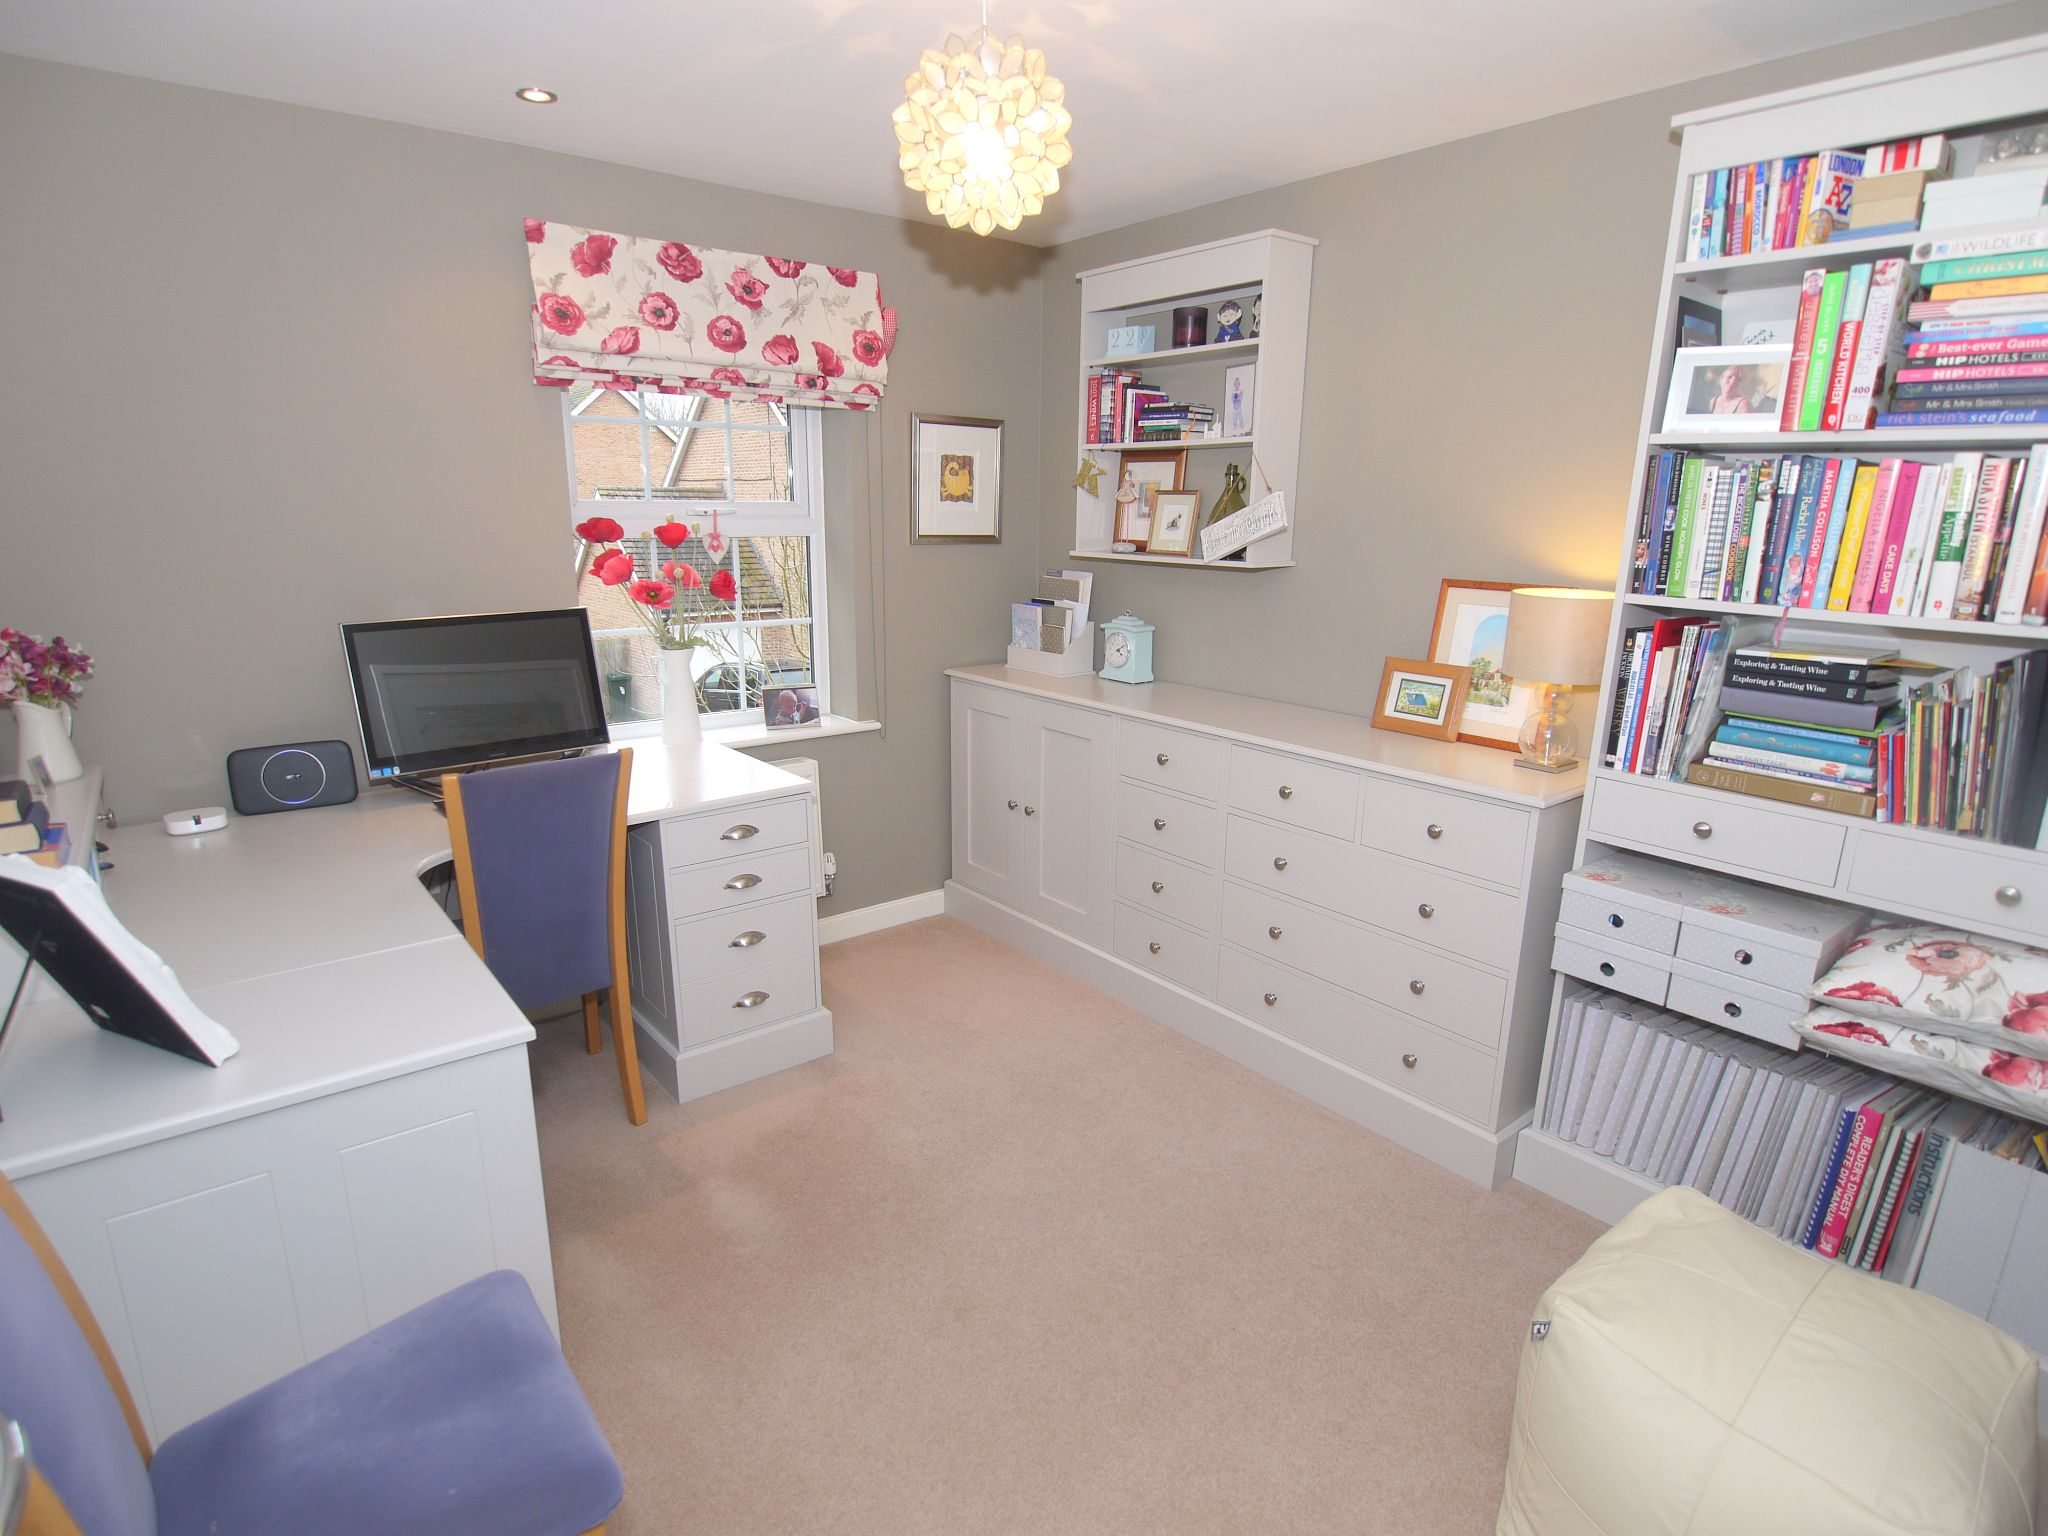 5 bedroom detached house For Sale in Sevenoaks - Photograph 10